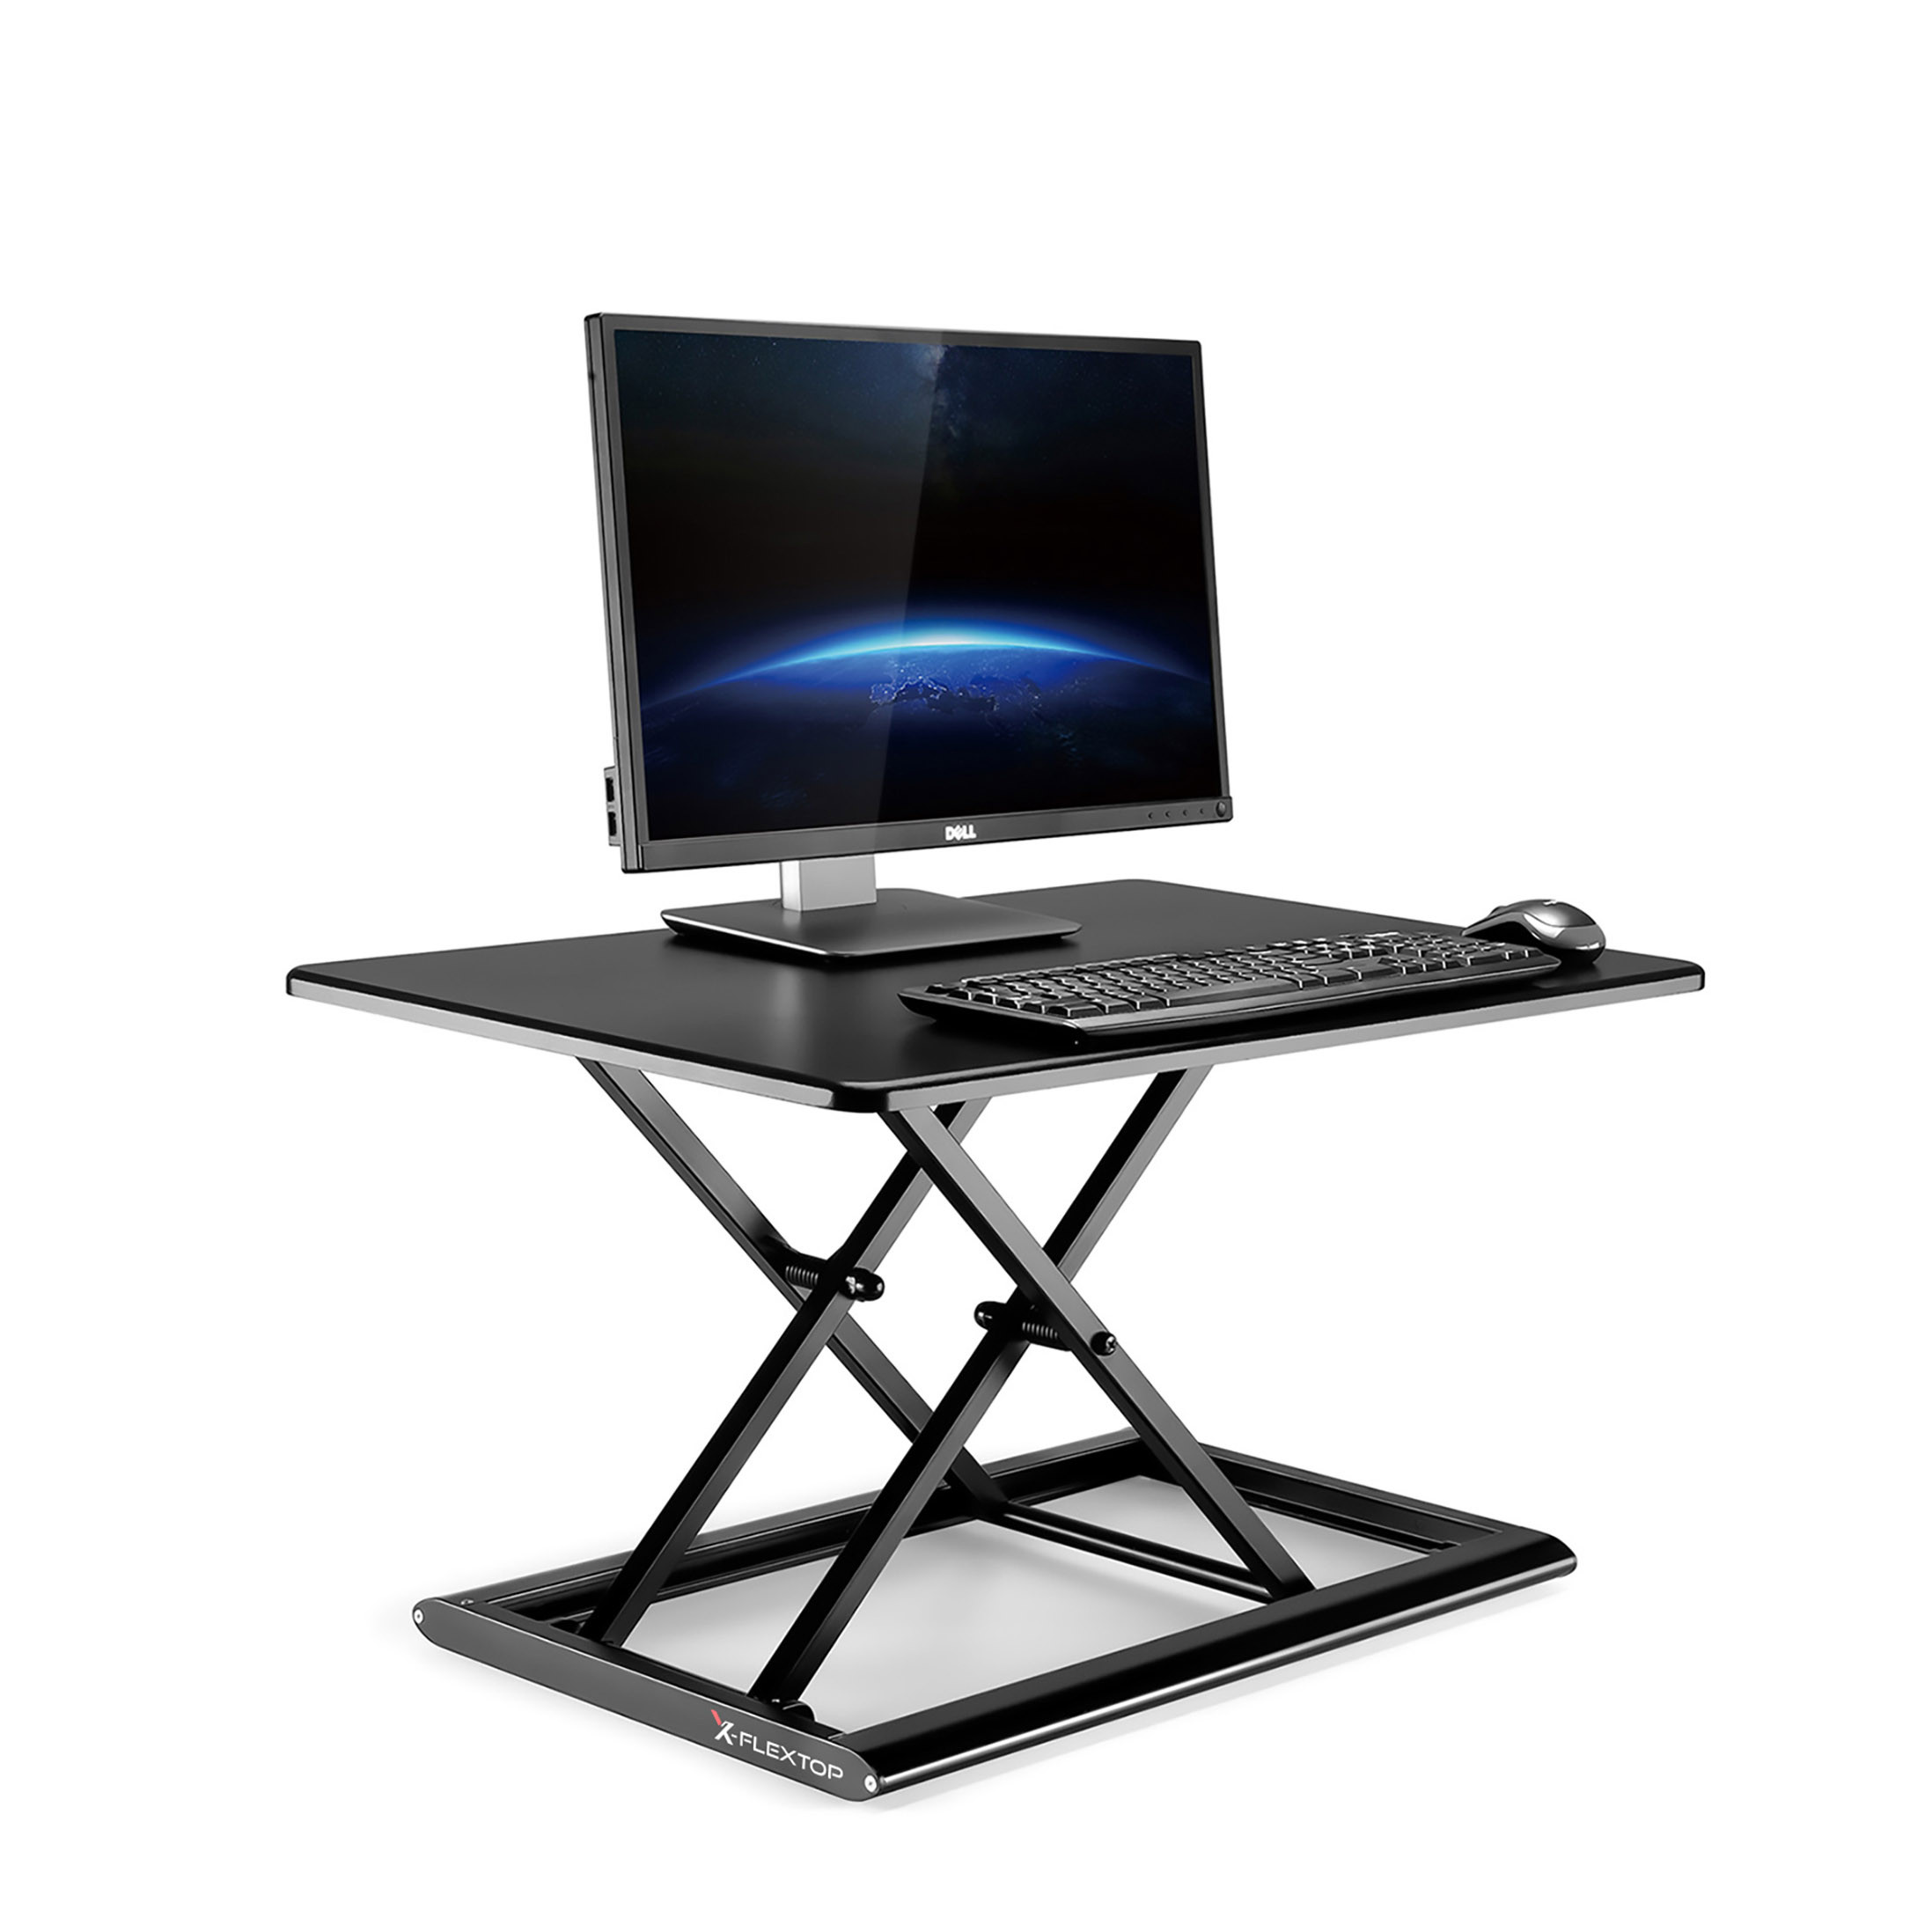 x-flextop portable sit to stand desk in black